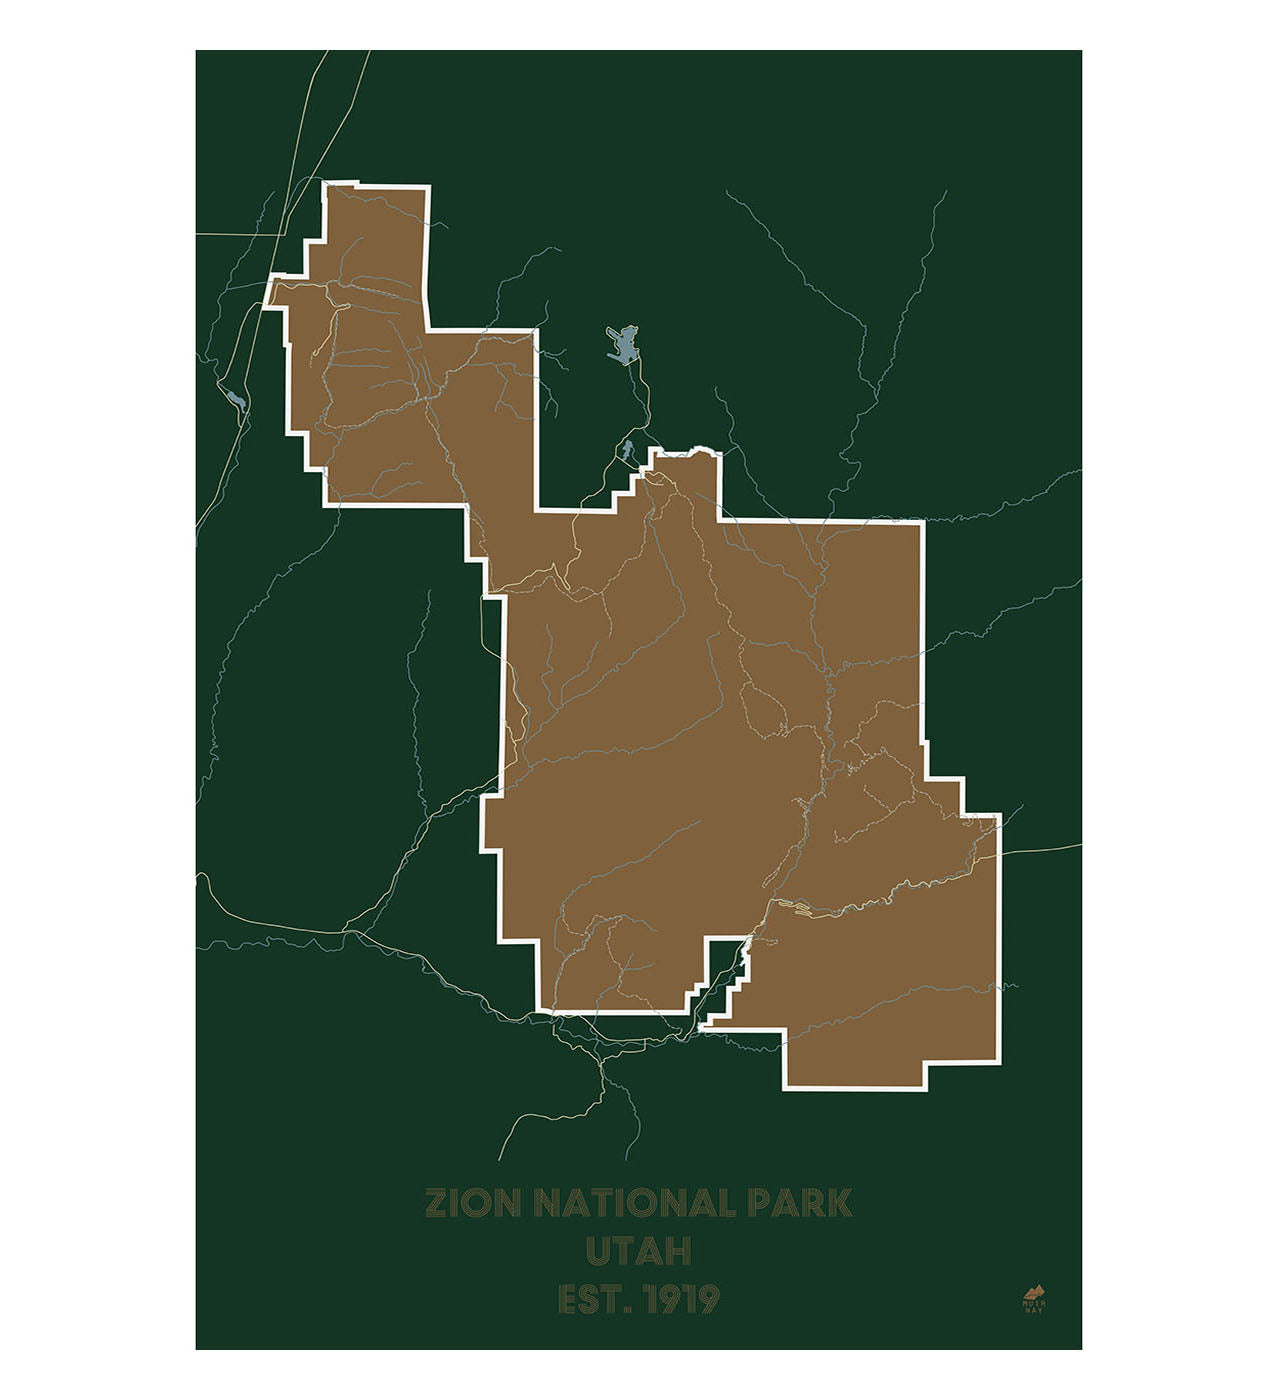 Zion_Spruce_2000x Zion National Park Topo Map on capitol reef topo map, albuquerque topo map, red rock canyon topo map, four corners topo map, canyonlands topo map, mt zion national park map, santa barbara topo map, zion national park on a usa map, dinosaur national monument topo map, inyo national forest topo map, mount st helens topo map, rocky mountain national park topographic map, sequoia national park topo map, bryce and zion arches national park map, havasu falls topo map, ashley national forest topo map, kaibab plateau topo map, glacier national park trail map, mojave national preserve topo map, white river national forest topo map,